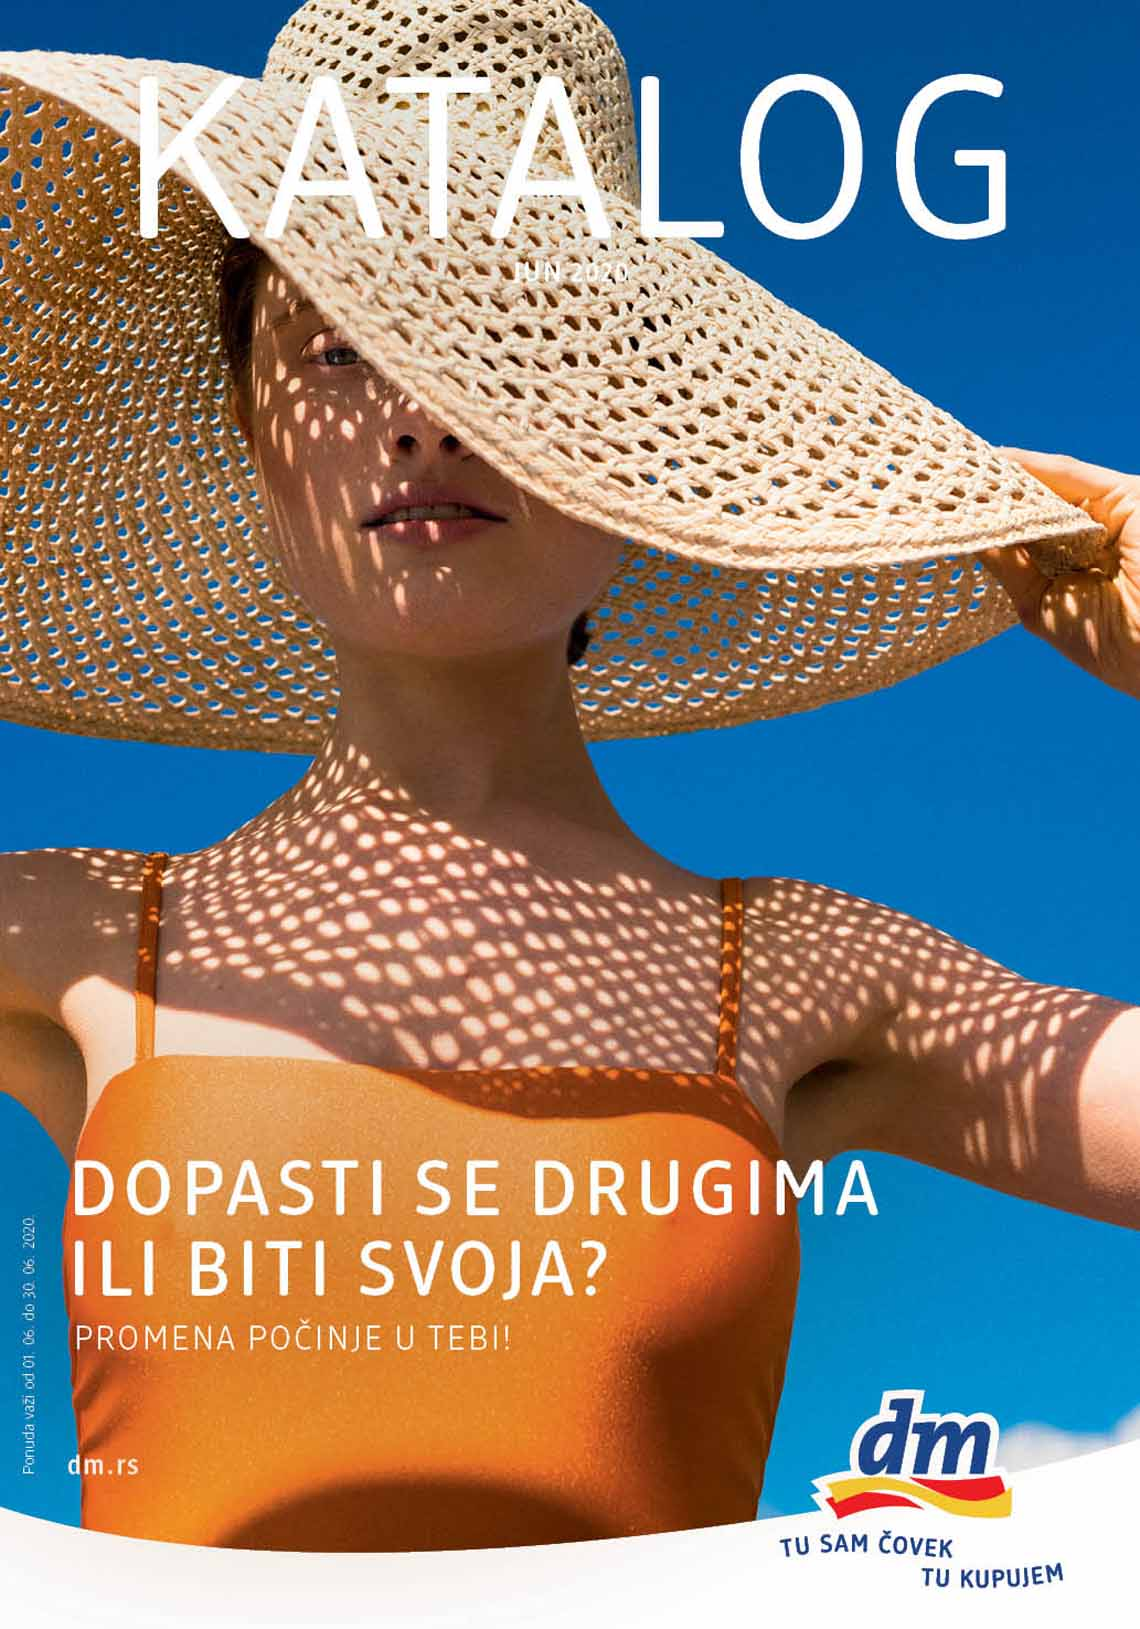 dm Katalog - Super akcija do 30.06.2020.